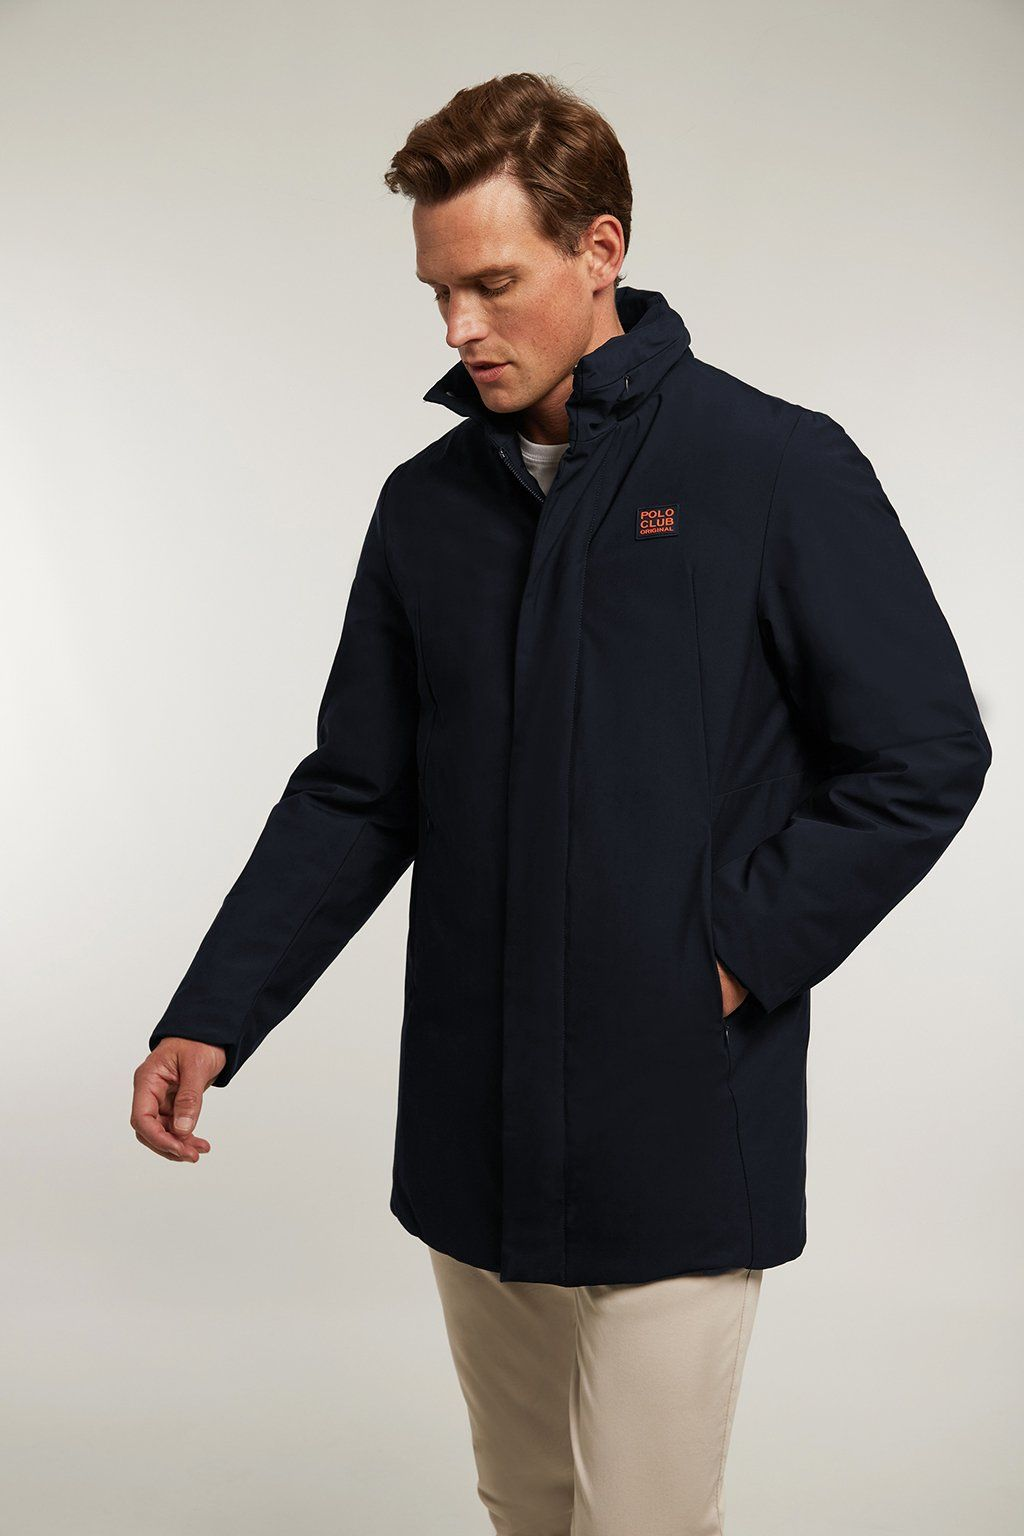 Navy blue technical coat with high collar